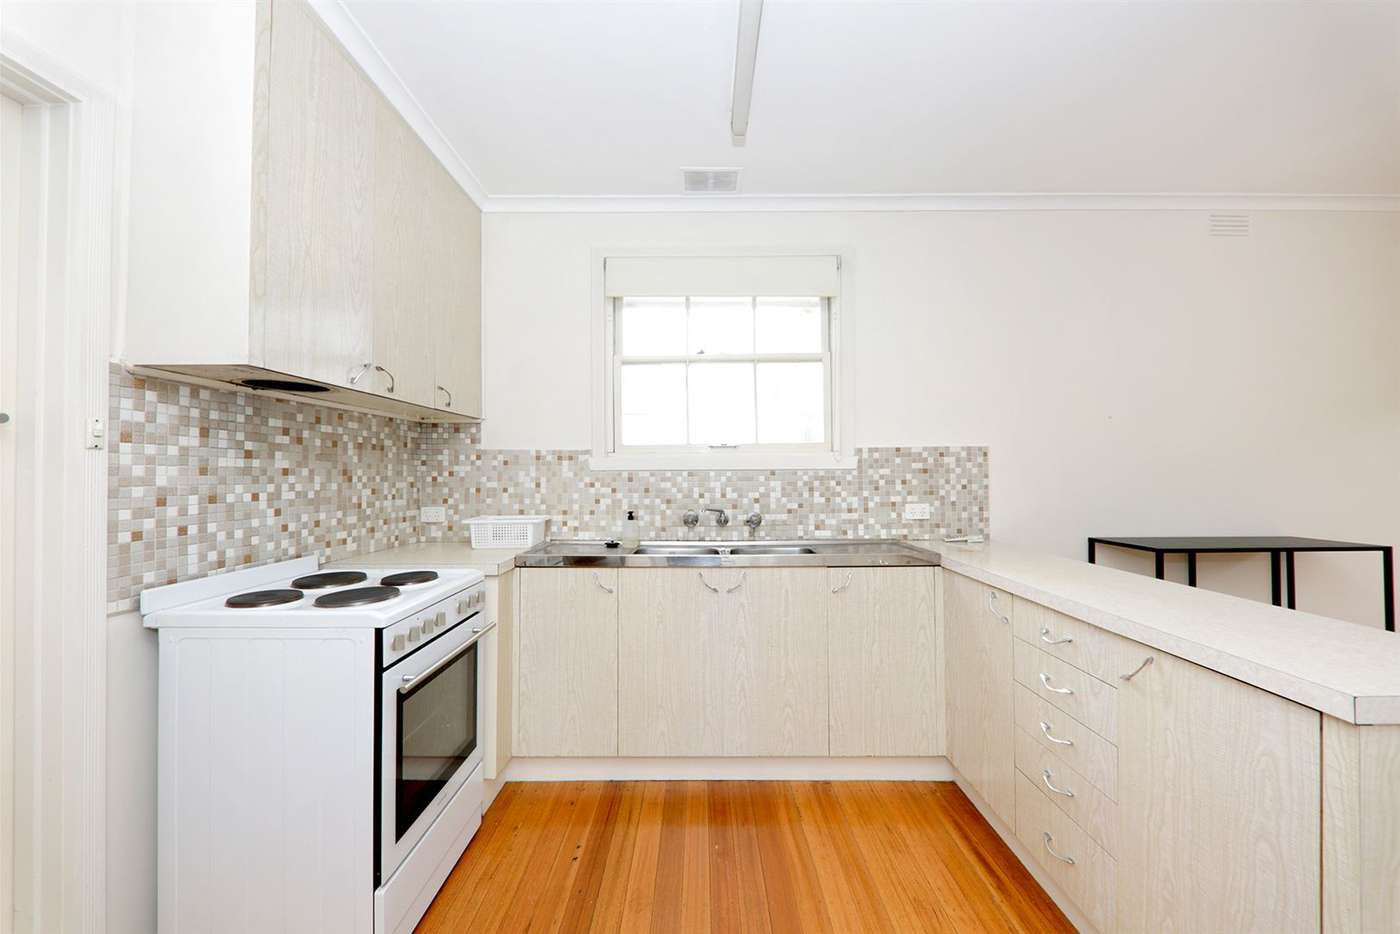 Seventh view of Homely unit listing, 8/12 Mummery Street, Mount Waverley VIC 3149